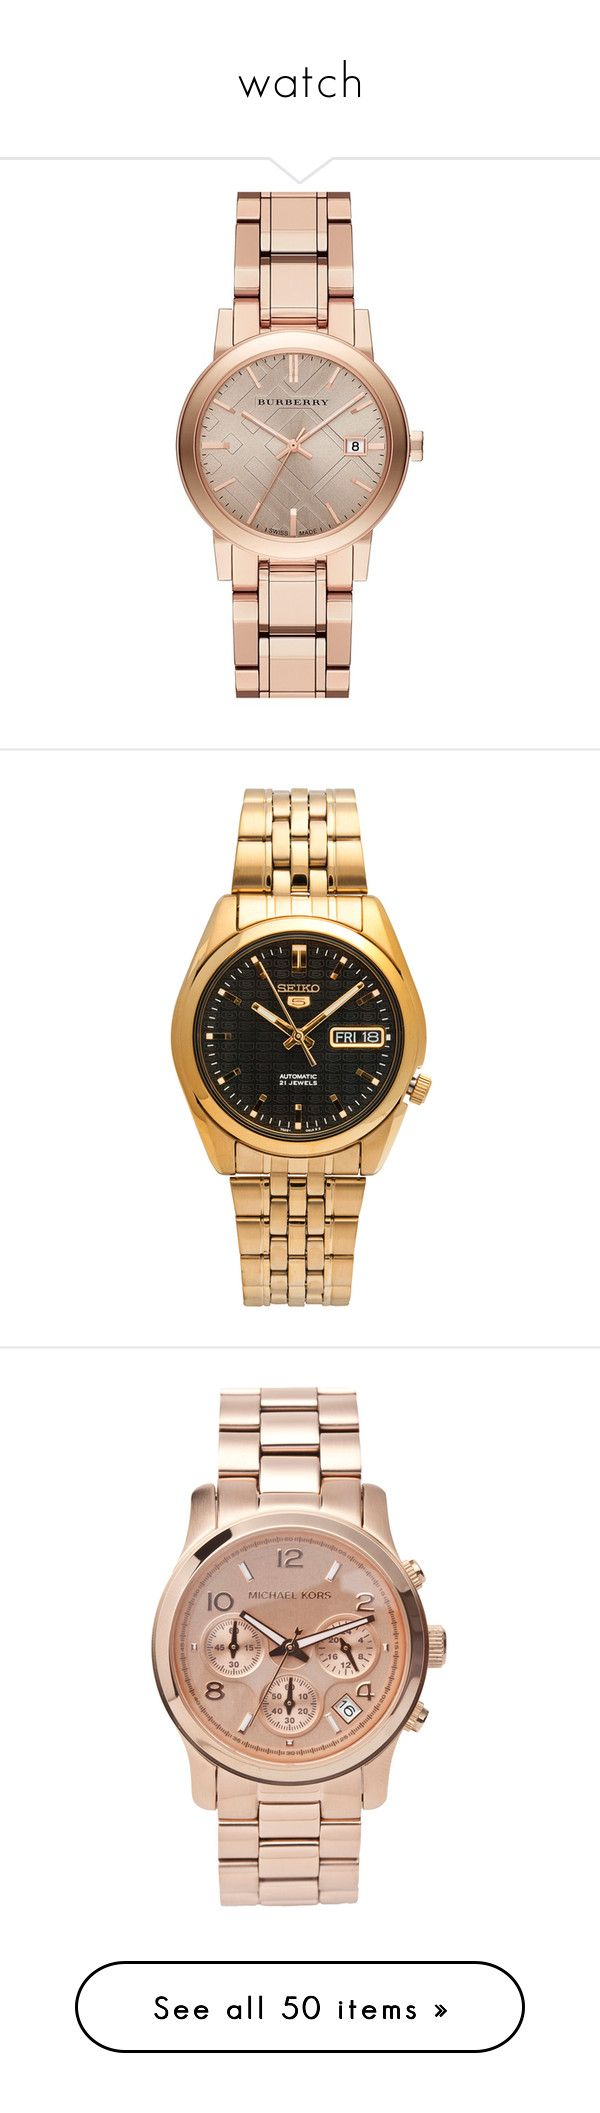 """""""watch"""" by namelif1 ❤ liked on Polyvore featuring jewelry, watches, accessories, bracelets, relojes, burberry watches, sapphire crystal watches, burberry jewelry, burberry and round watches"""